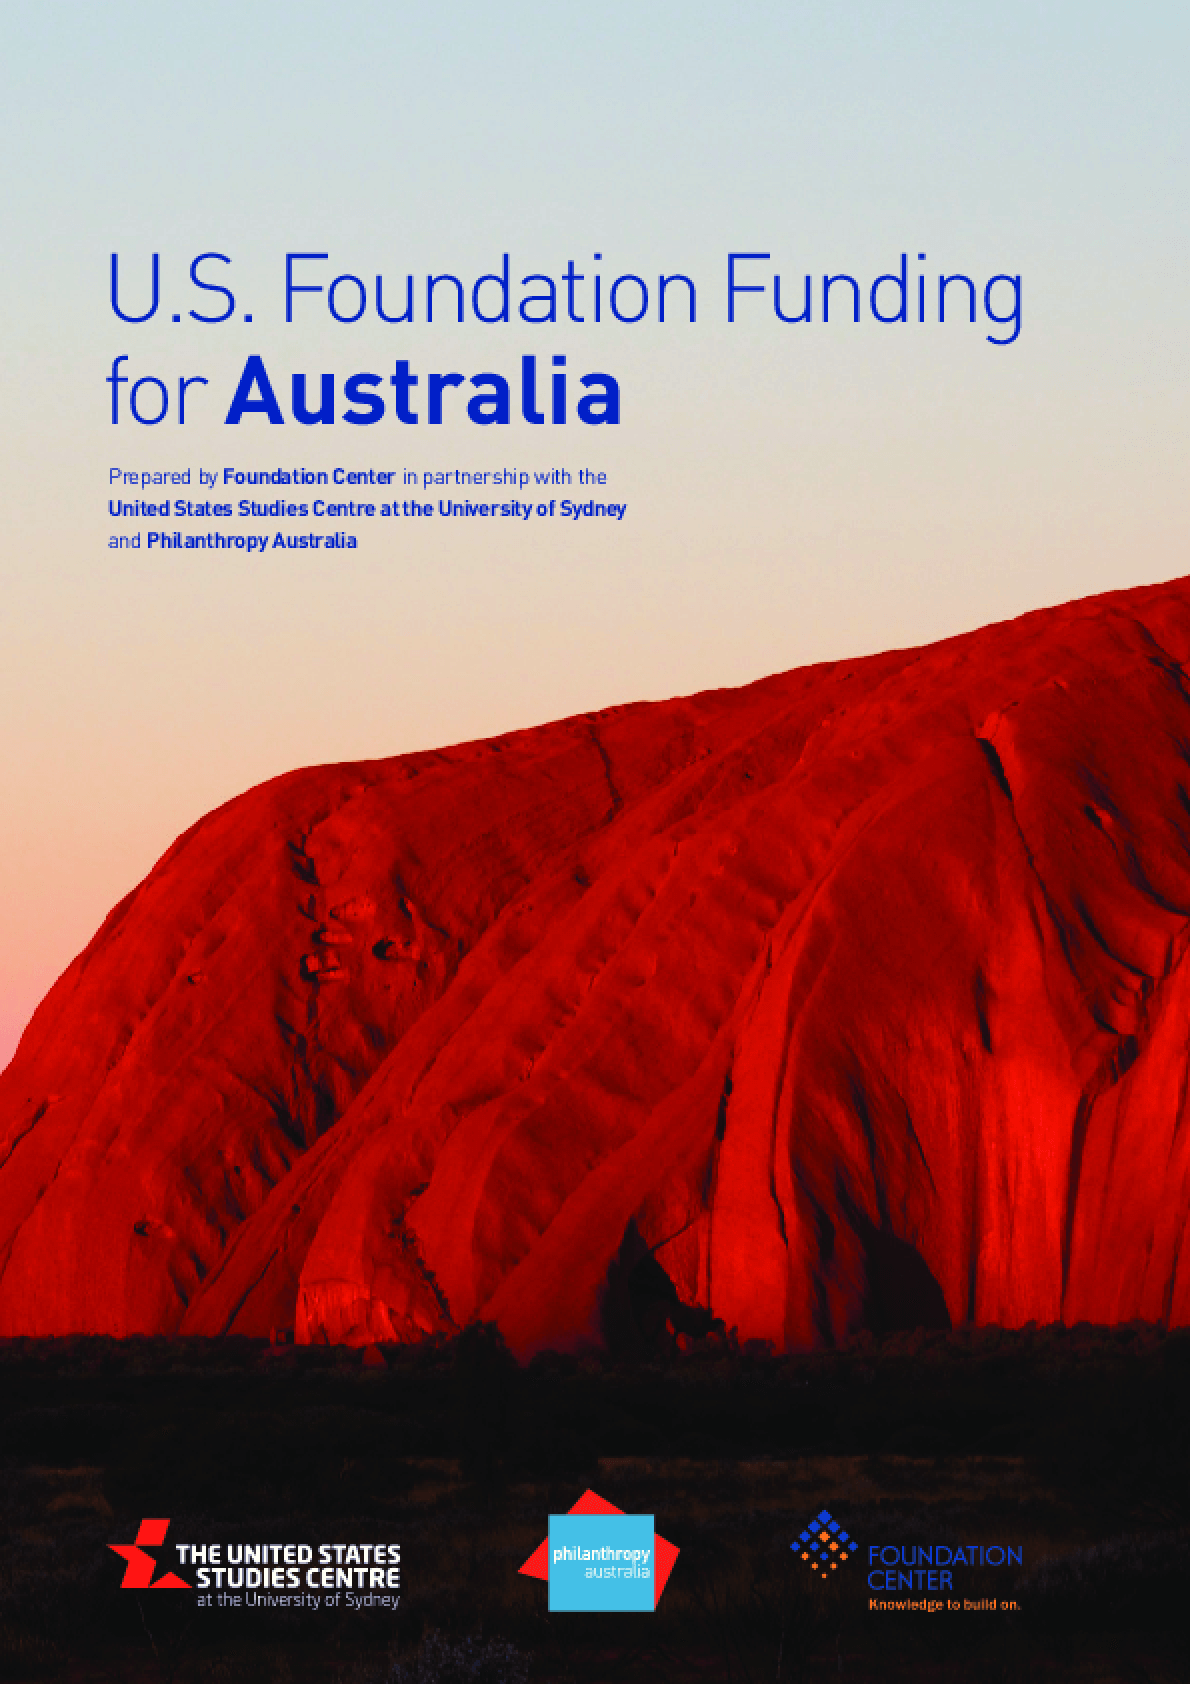 U.S. Foundation Funding for Australia